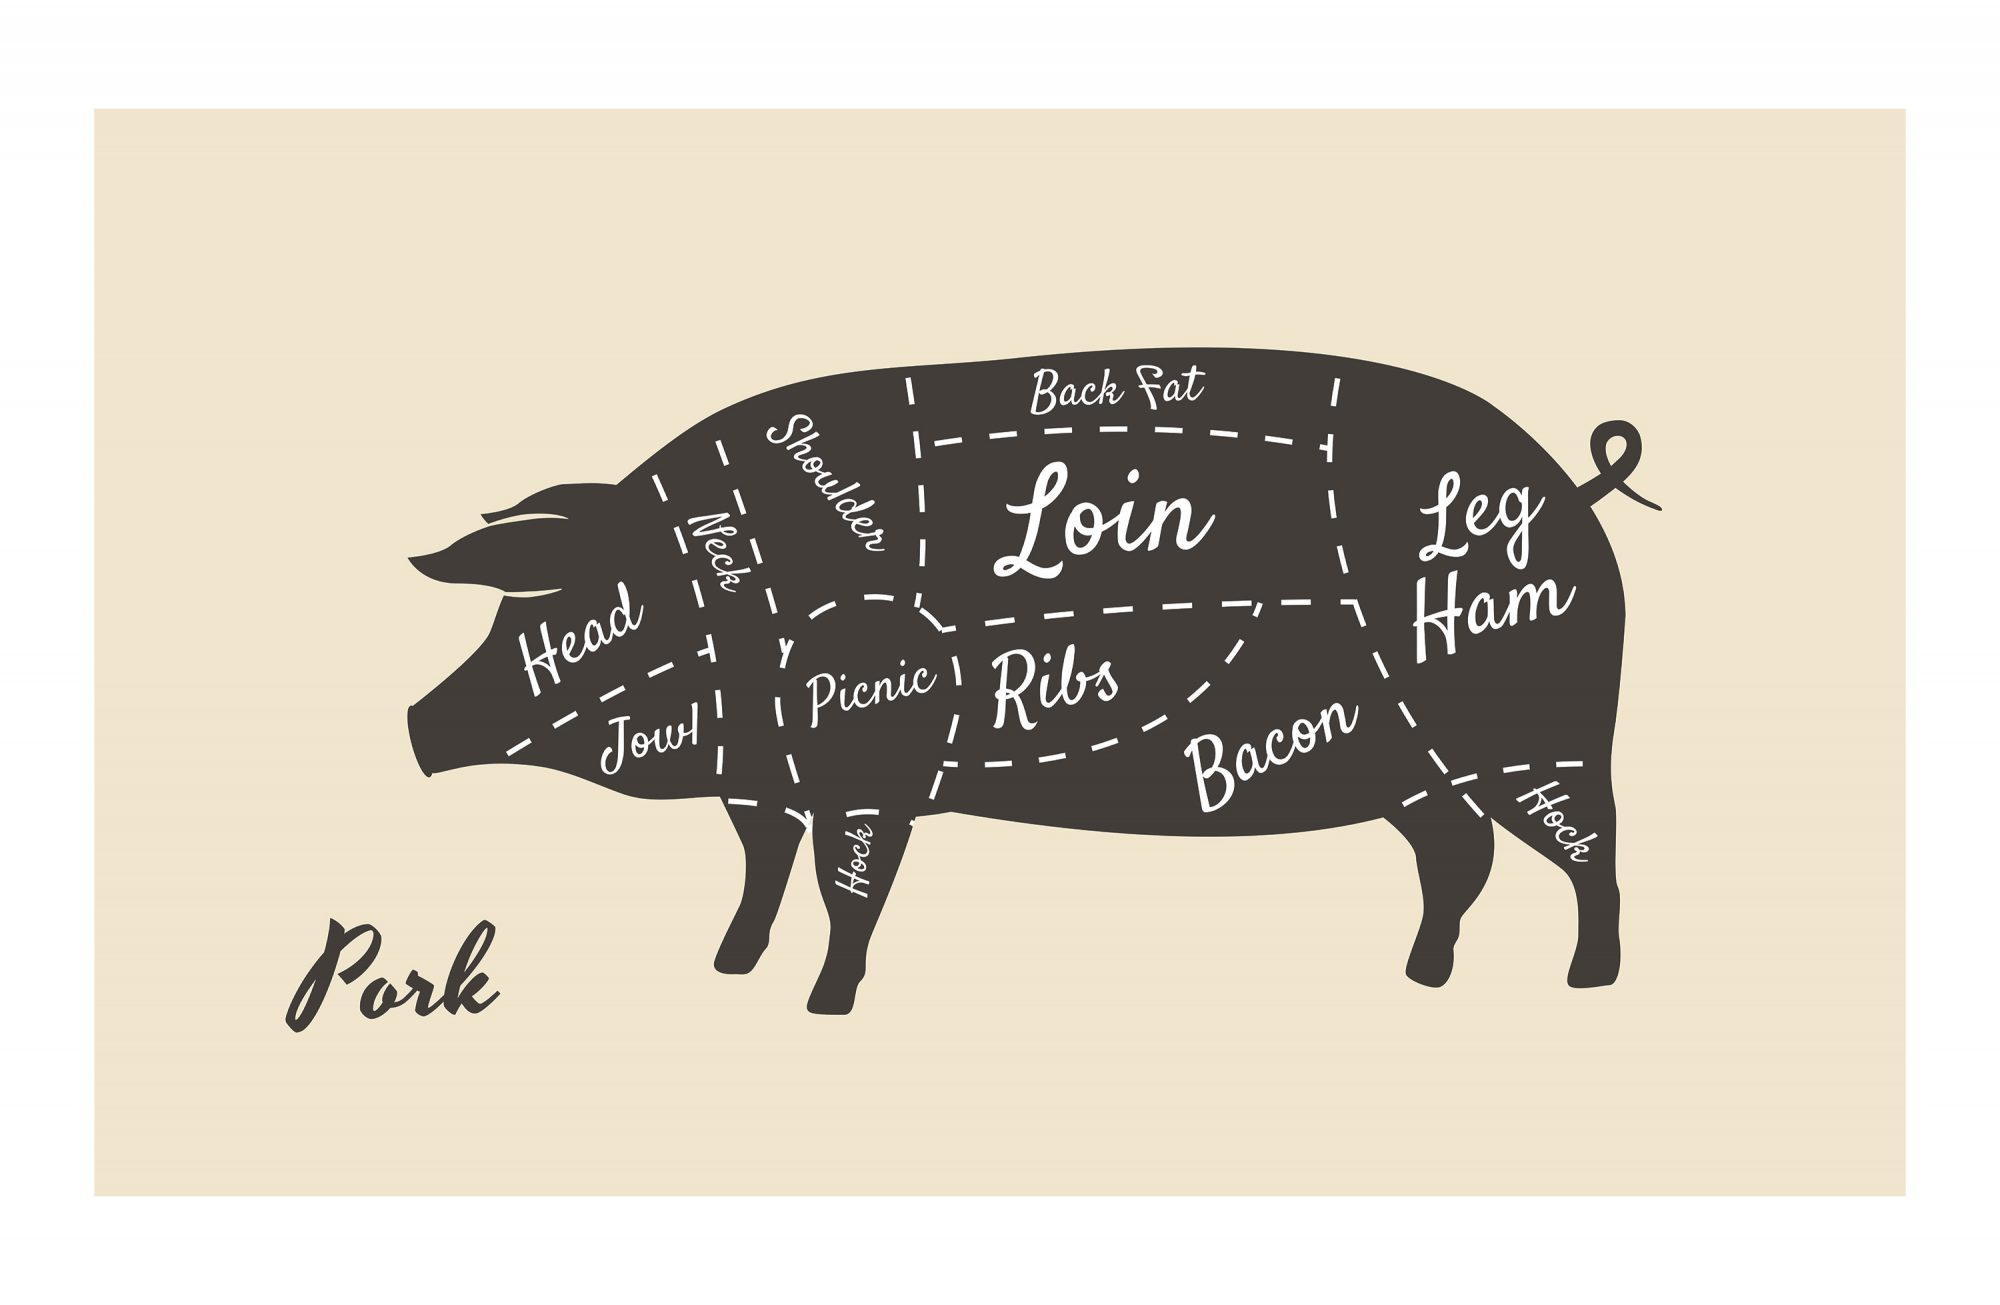 Pork Cuts Map